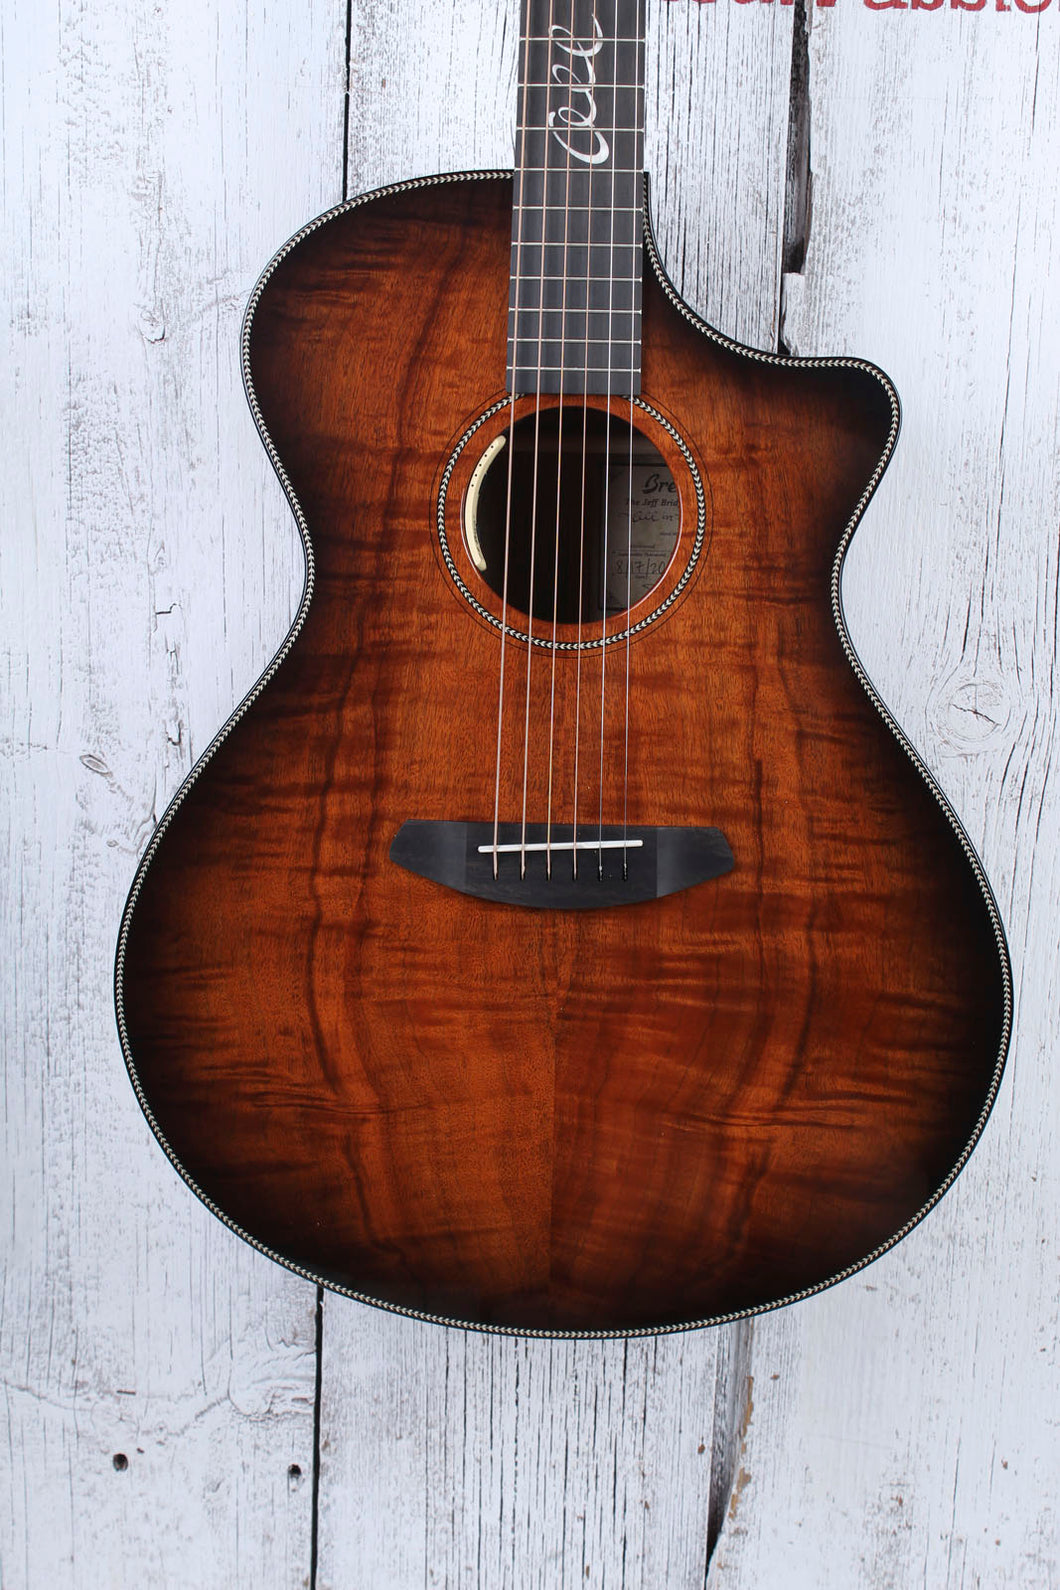 Breedlove Jeff Bridges Limited Oregon Concerto Bourbon Acoustic Electric Guitar